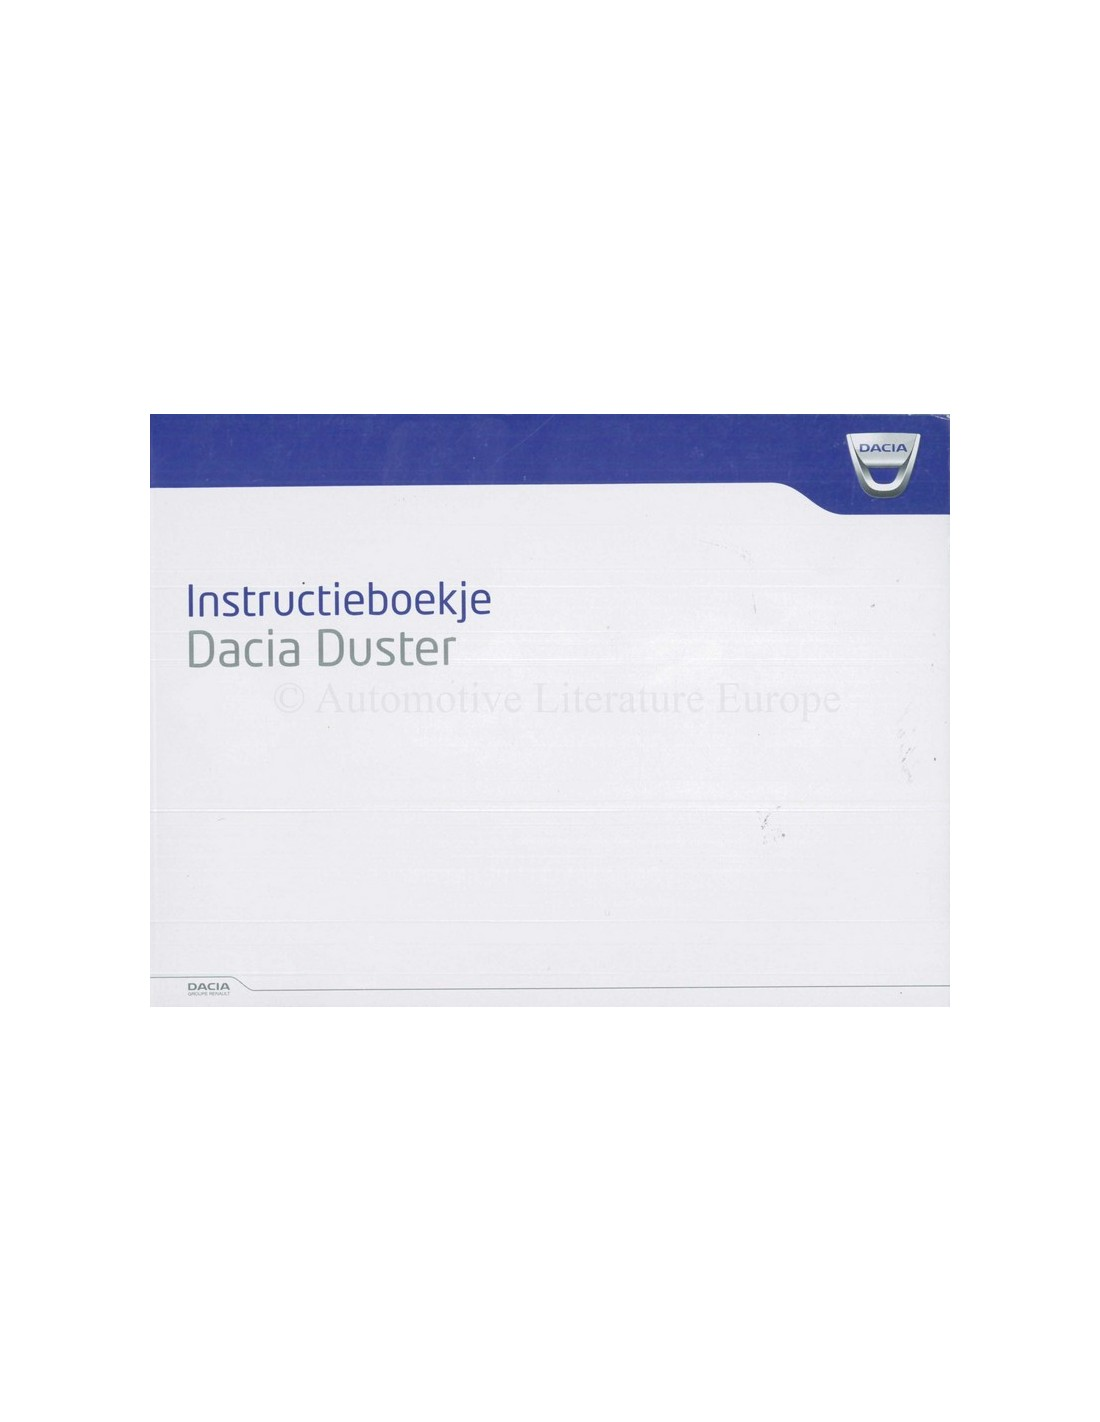 2014 dacia duster owner s manual handbook dutch rh autolit eu dacia sandero owners manual dacia sandero owners manual